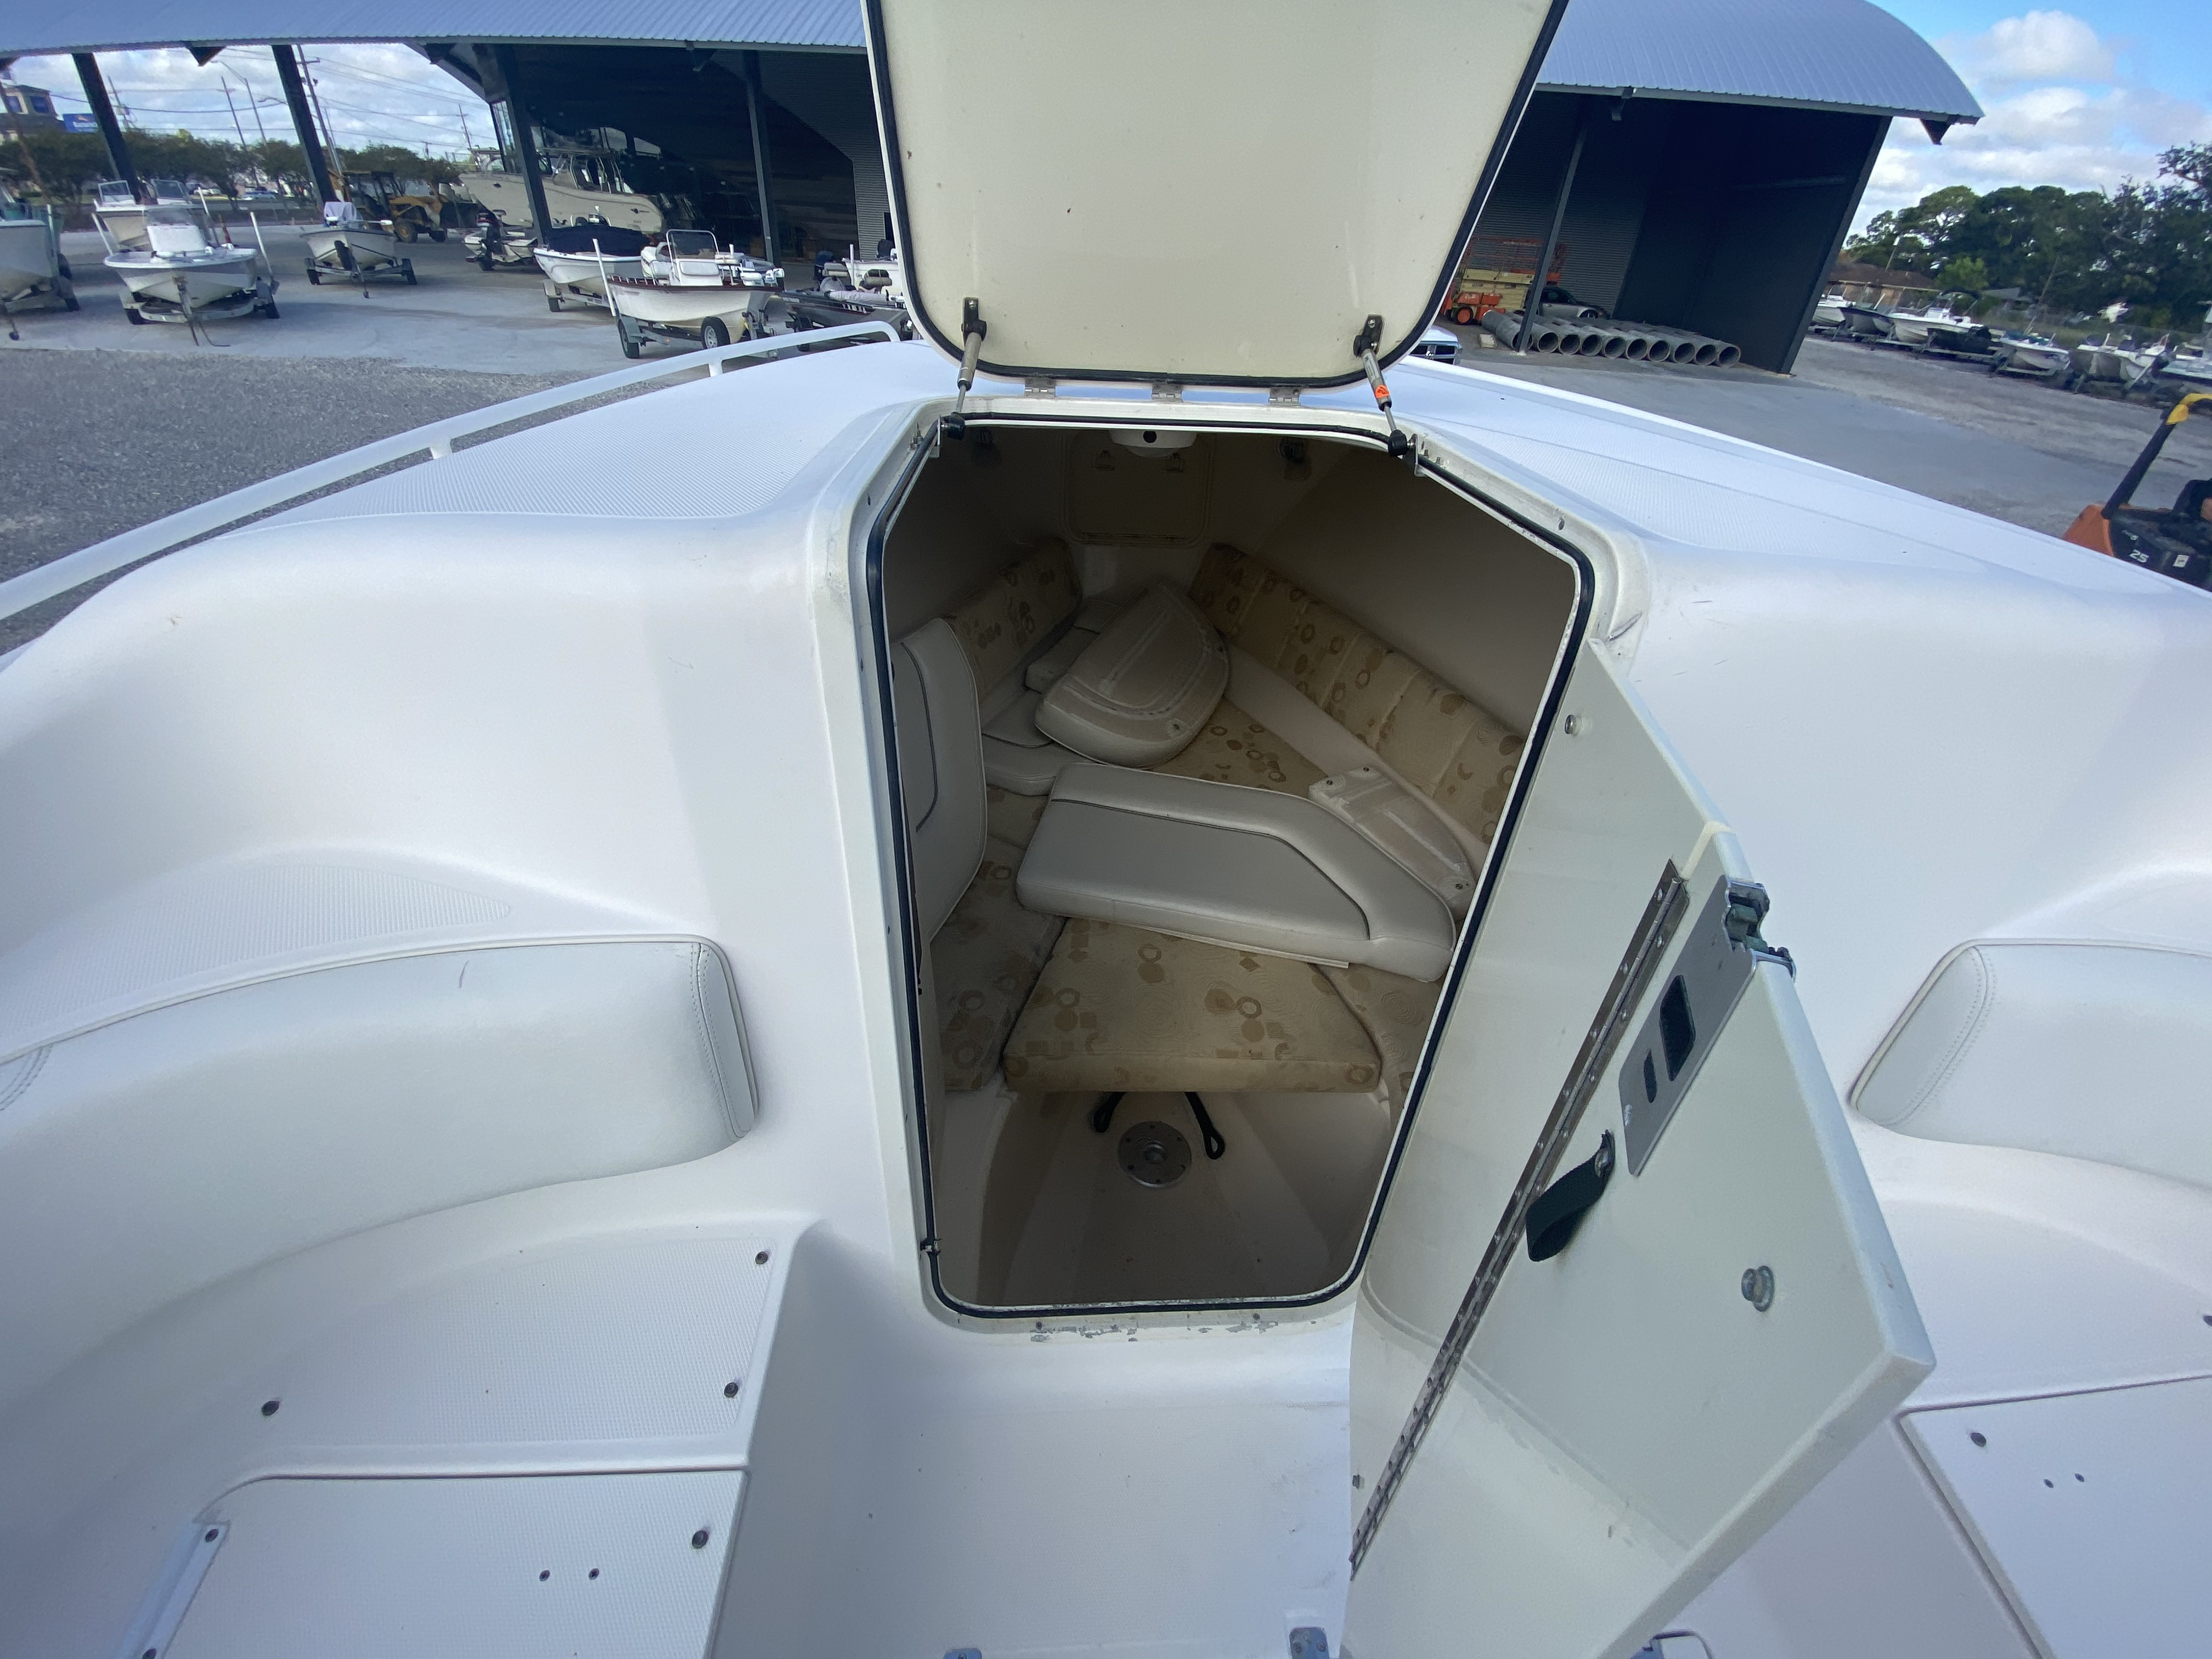 2006 Wellcraft boat for sale, model of the boat is 352 Sport & Image # 24 of 27